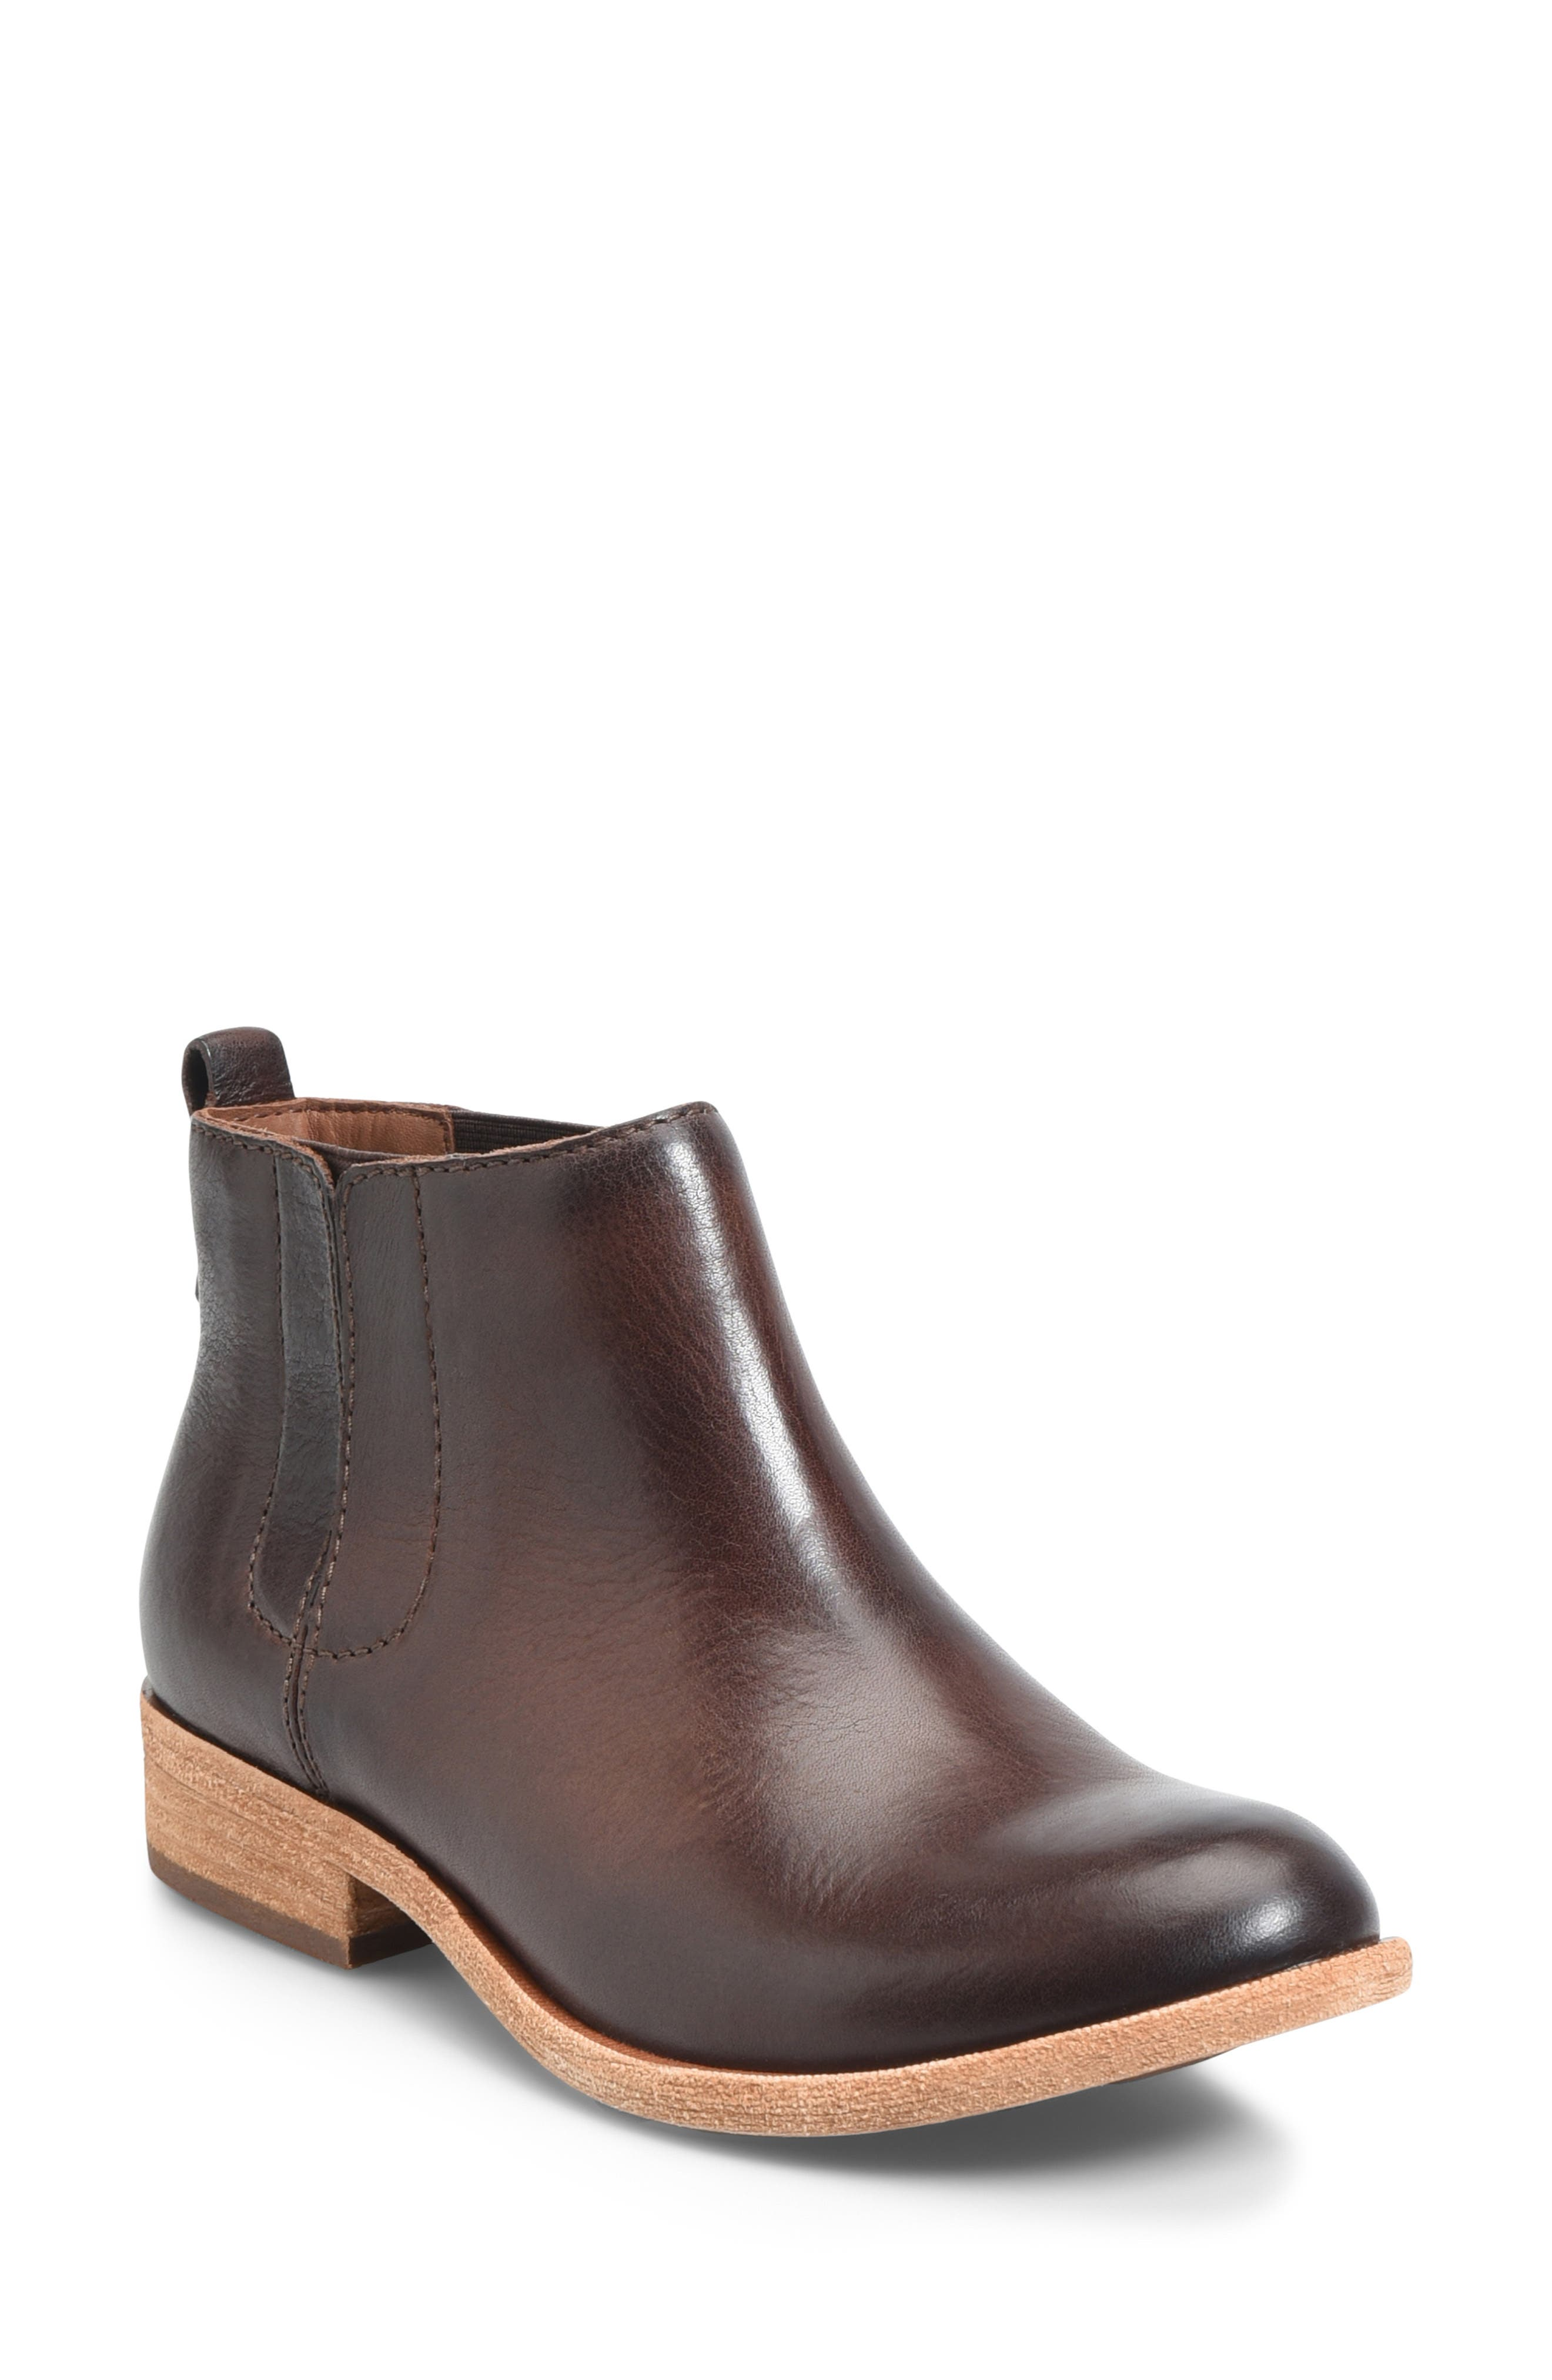 KORK-EASE<SUP>®</SUP>, Velma Bootie, Main thumbnail 1, color, DARK BROWN LEATHER